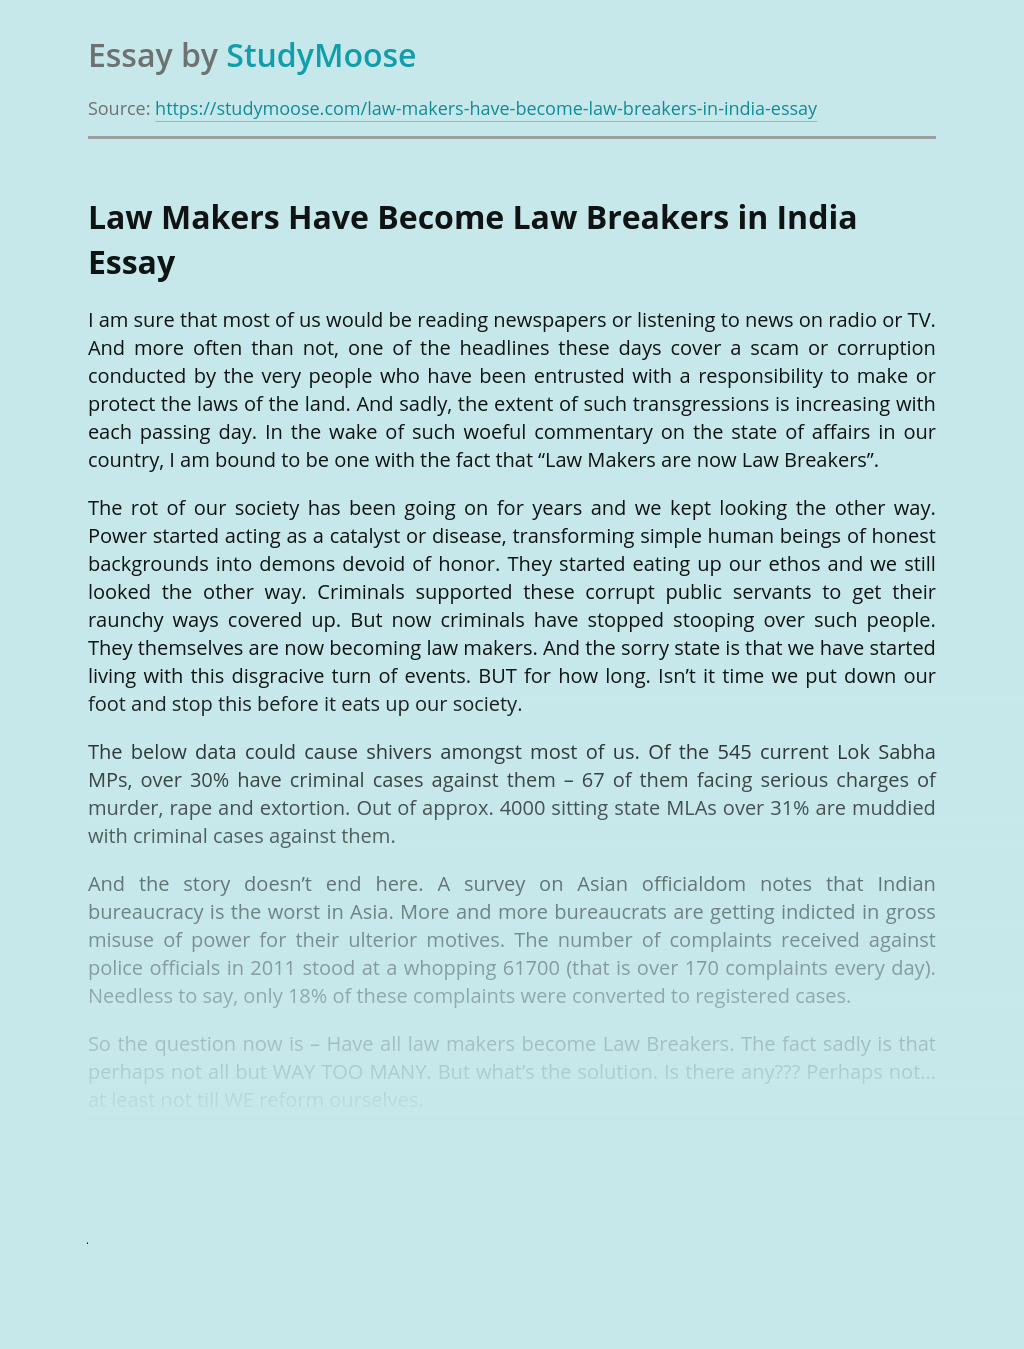 Law Makers Have Become Law Breakers in India